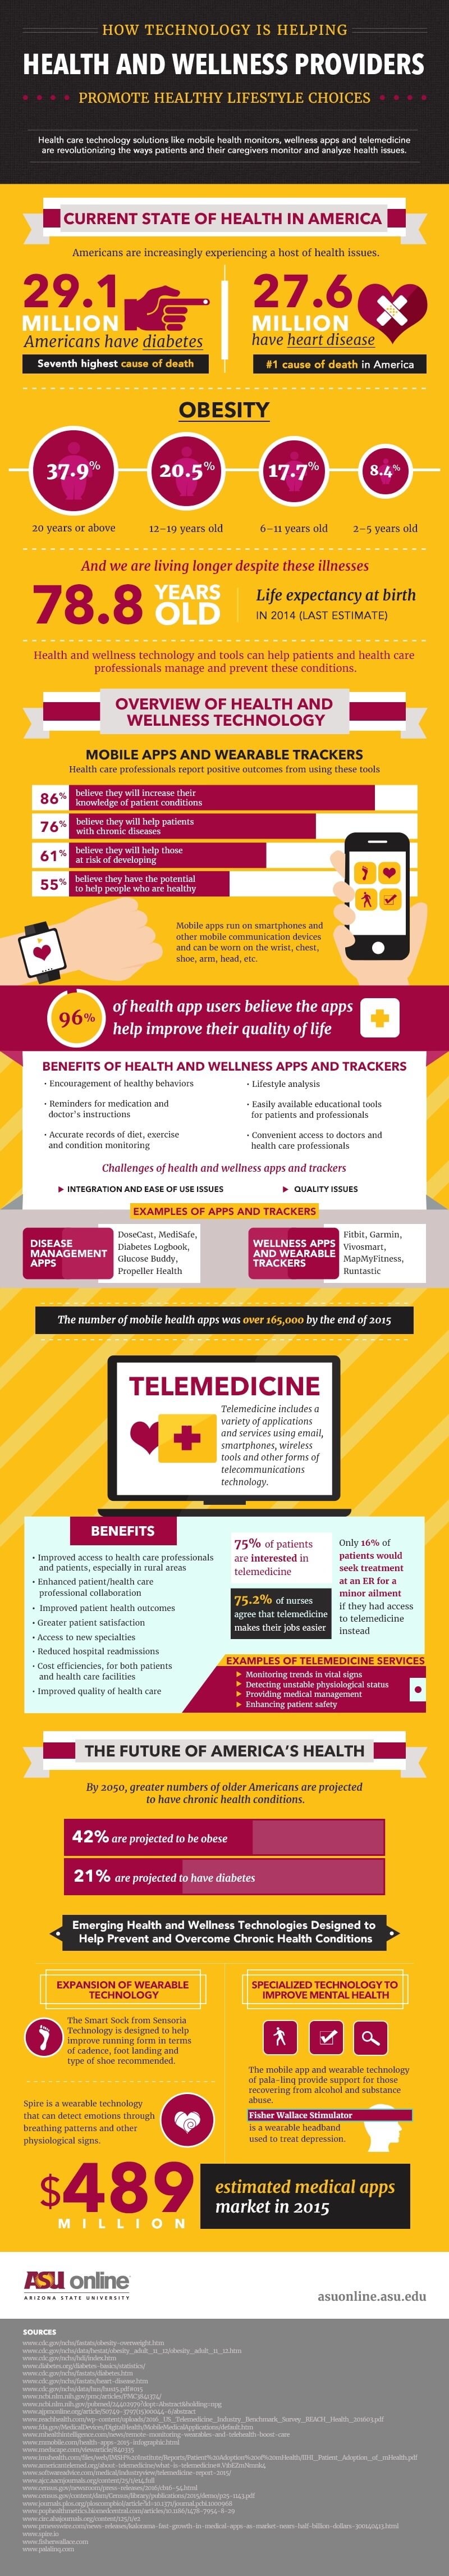 technology-helps-health-wellness-providers-infographic-plaza